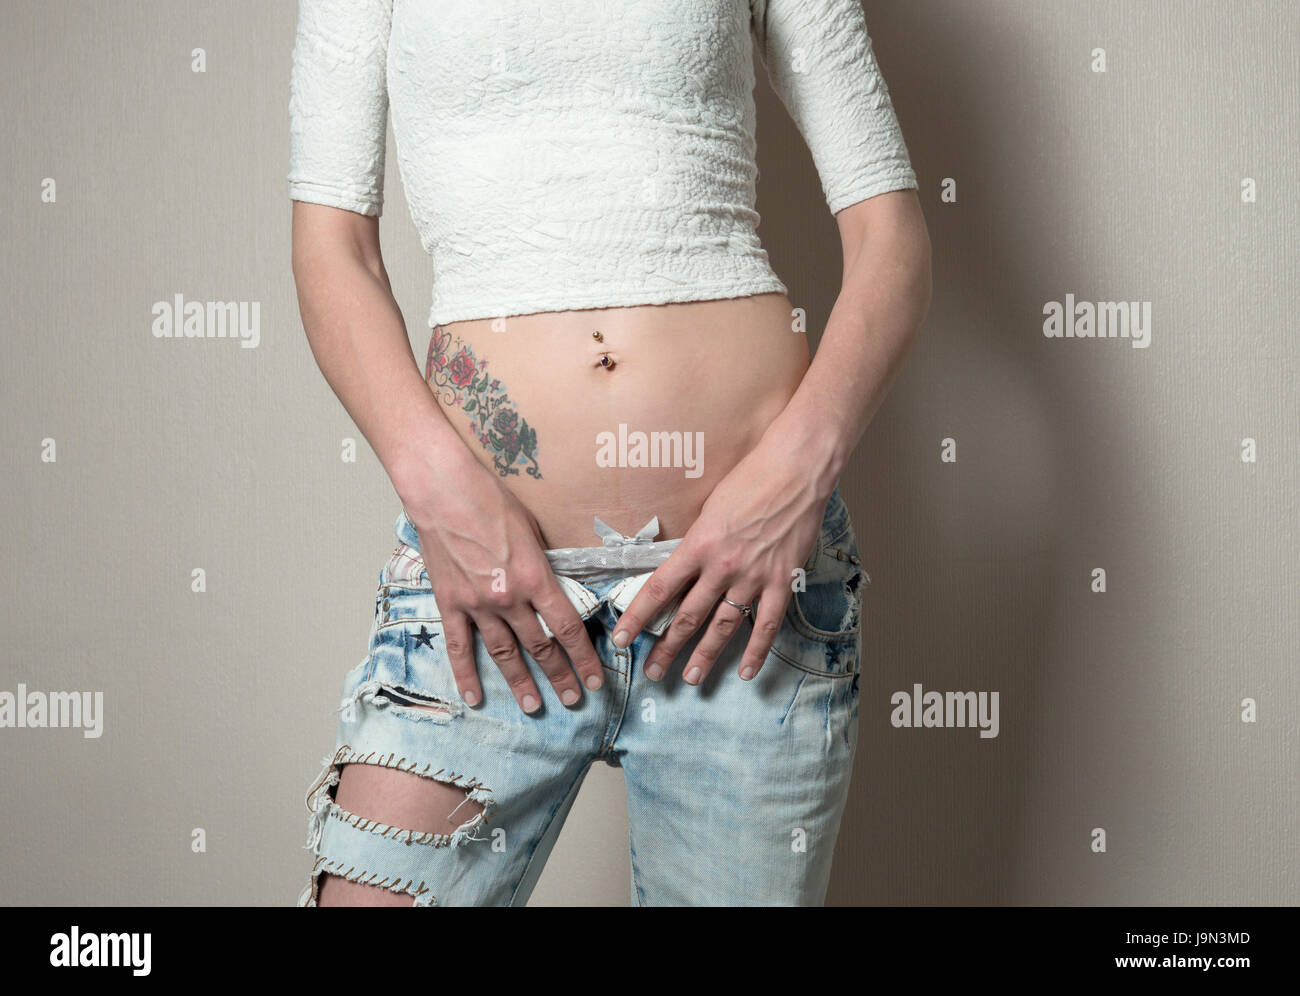 Young slim Caucasian woman wearing short knitted top with thumbs in belt line of open cut blue jeans, revealing - Stock Image